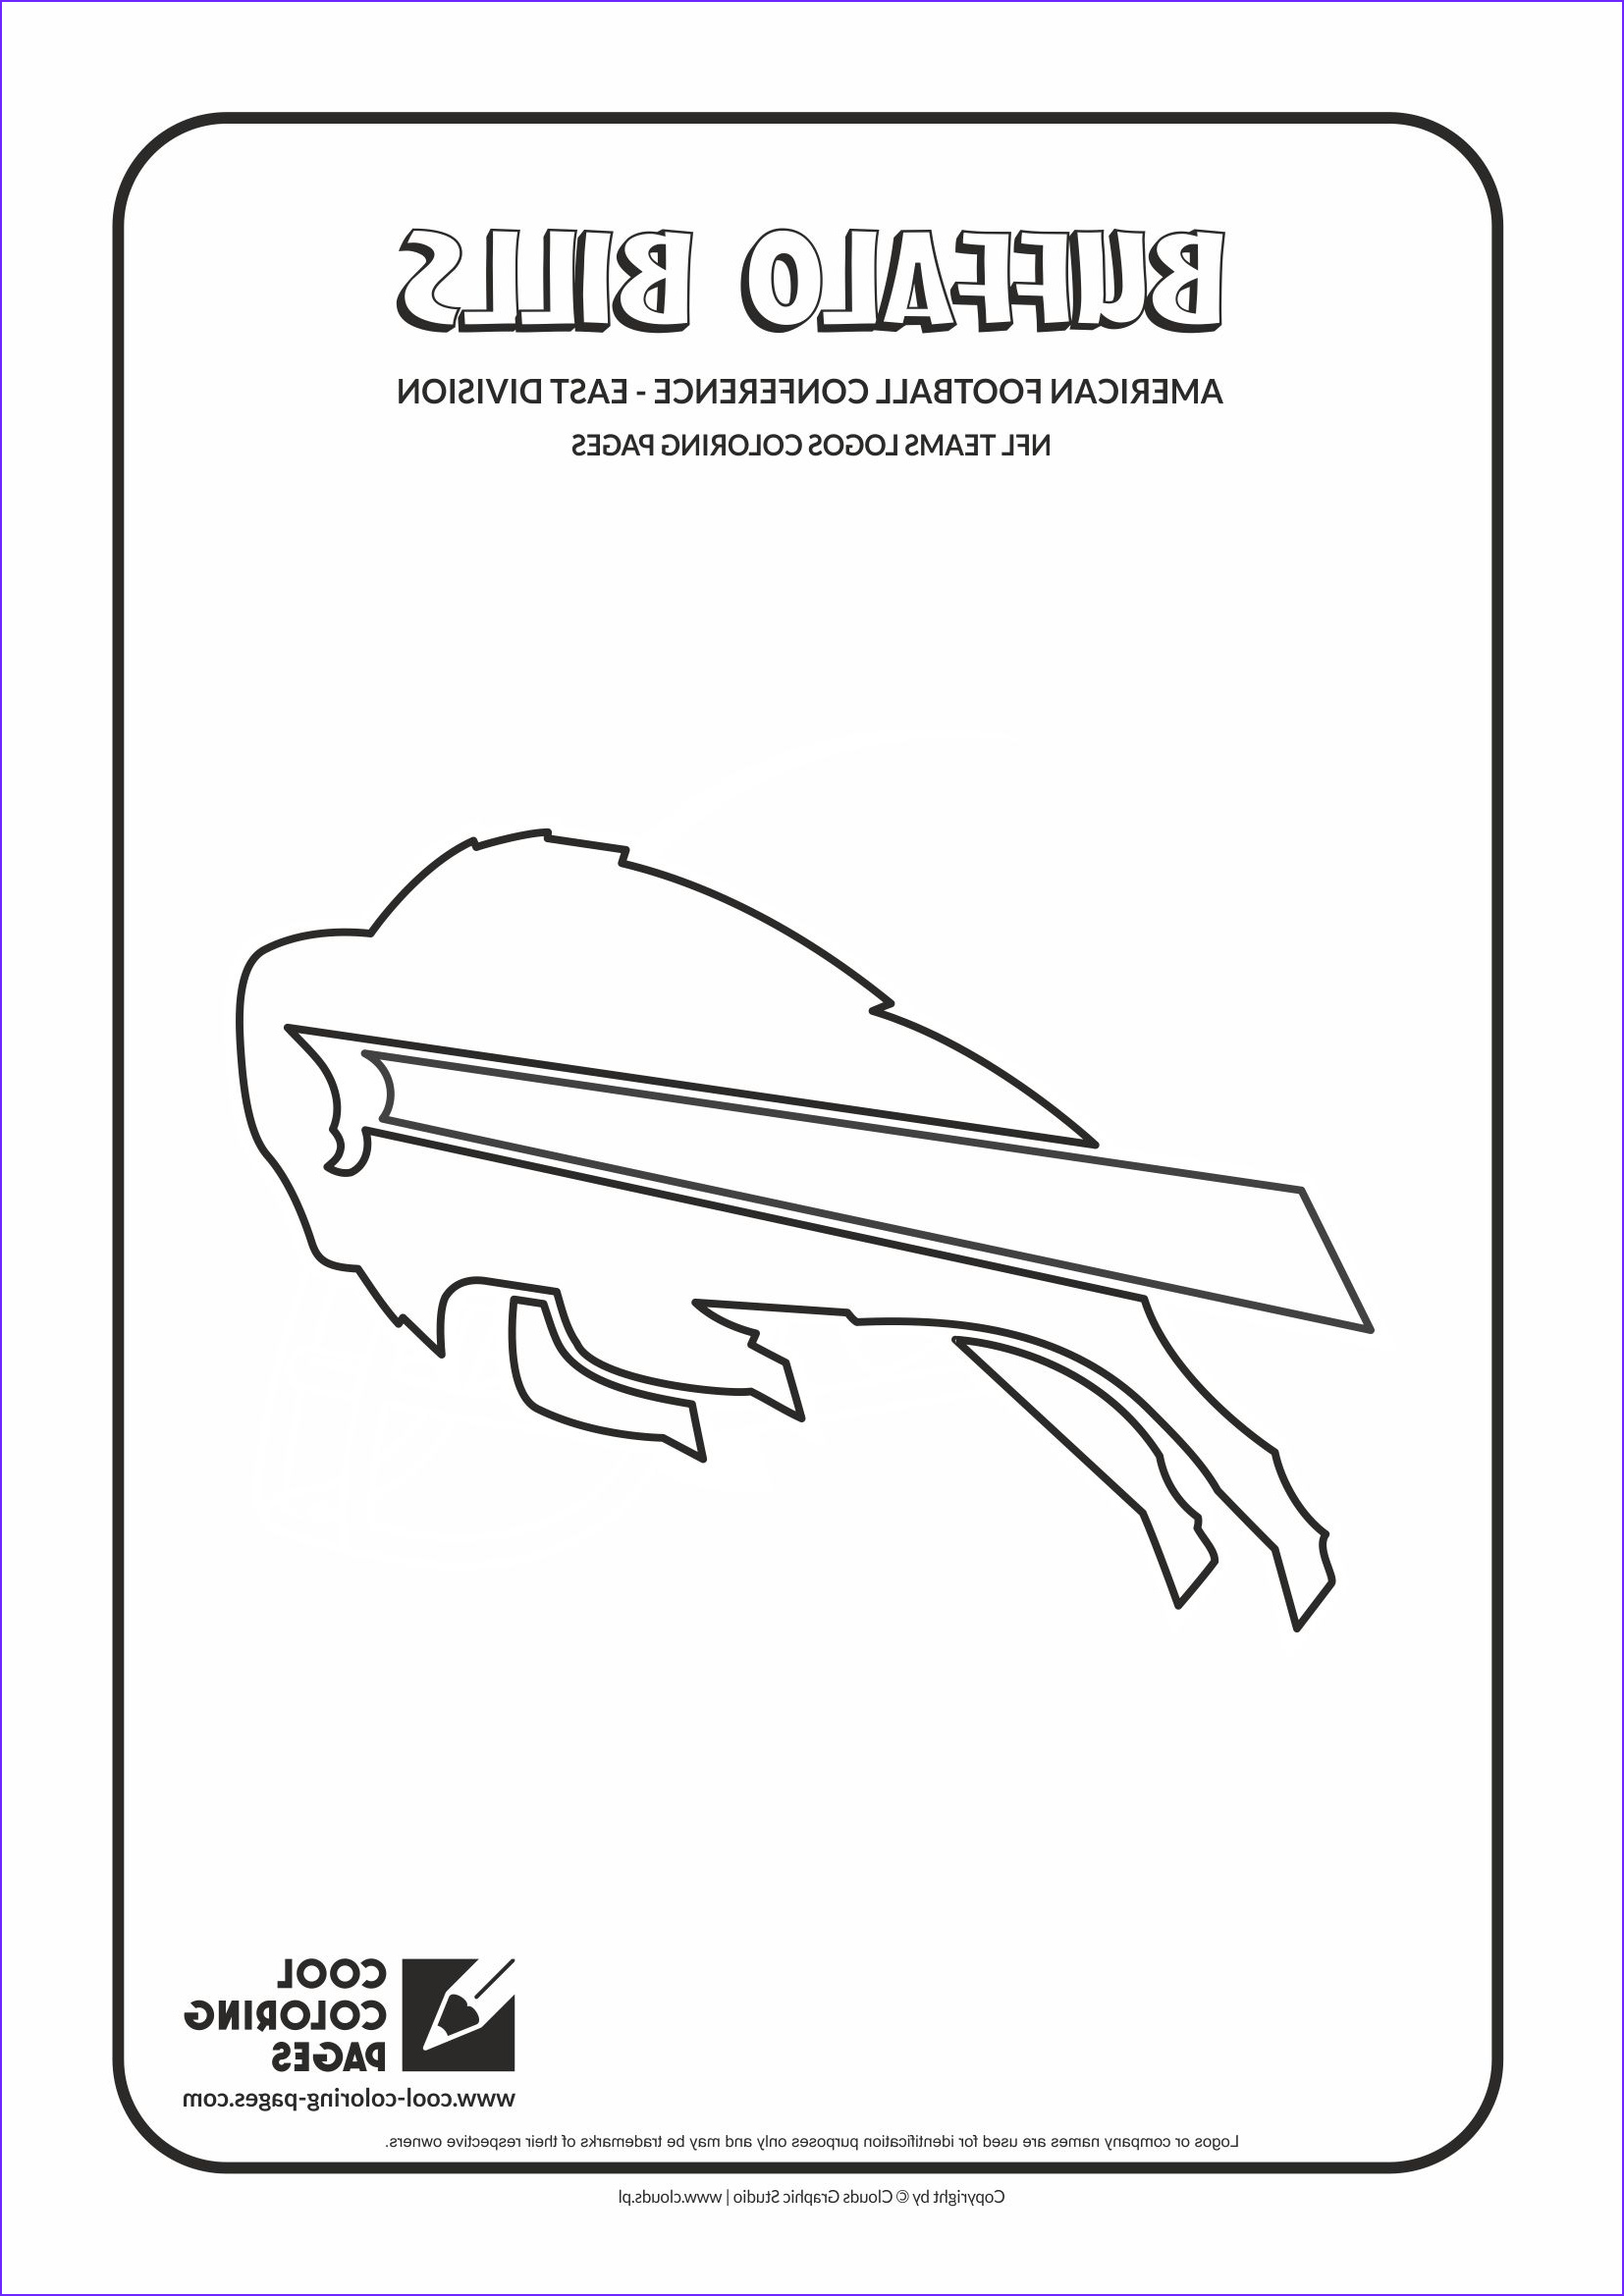 nfl teams logos coloring pages